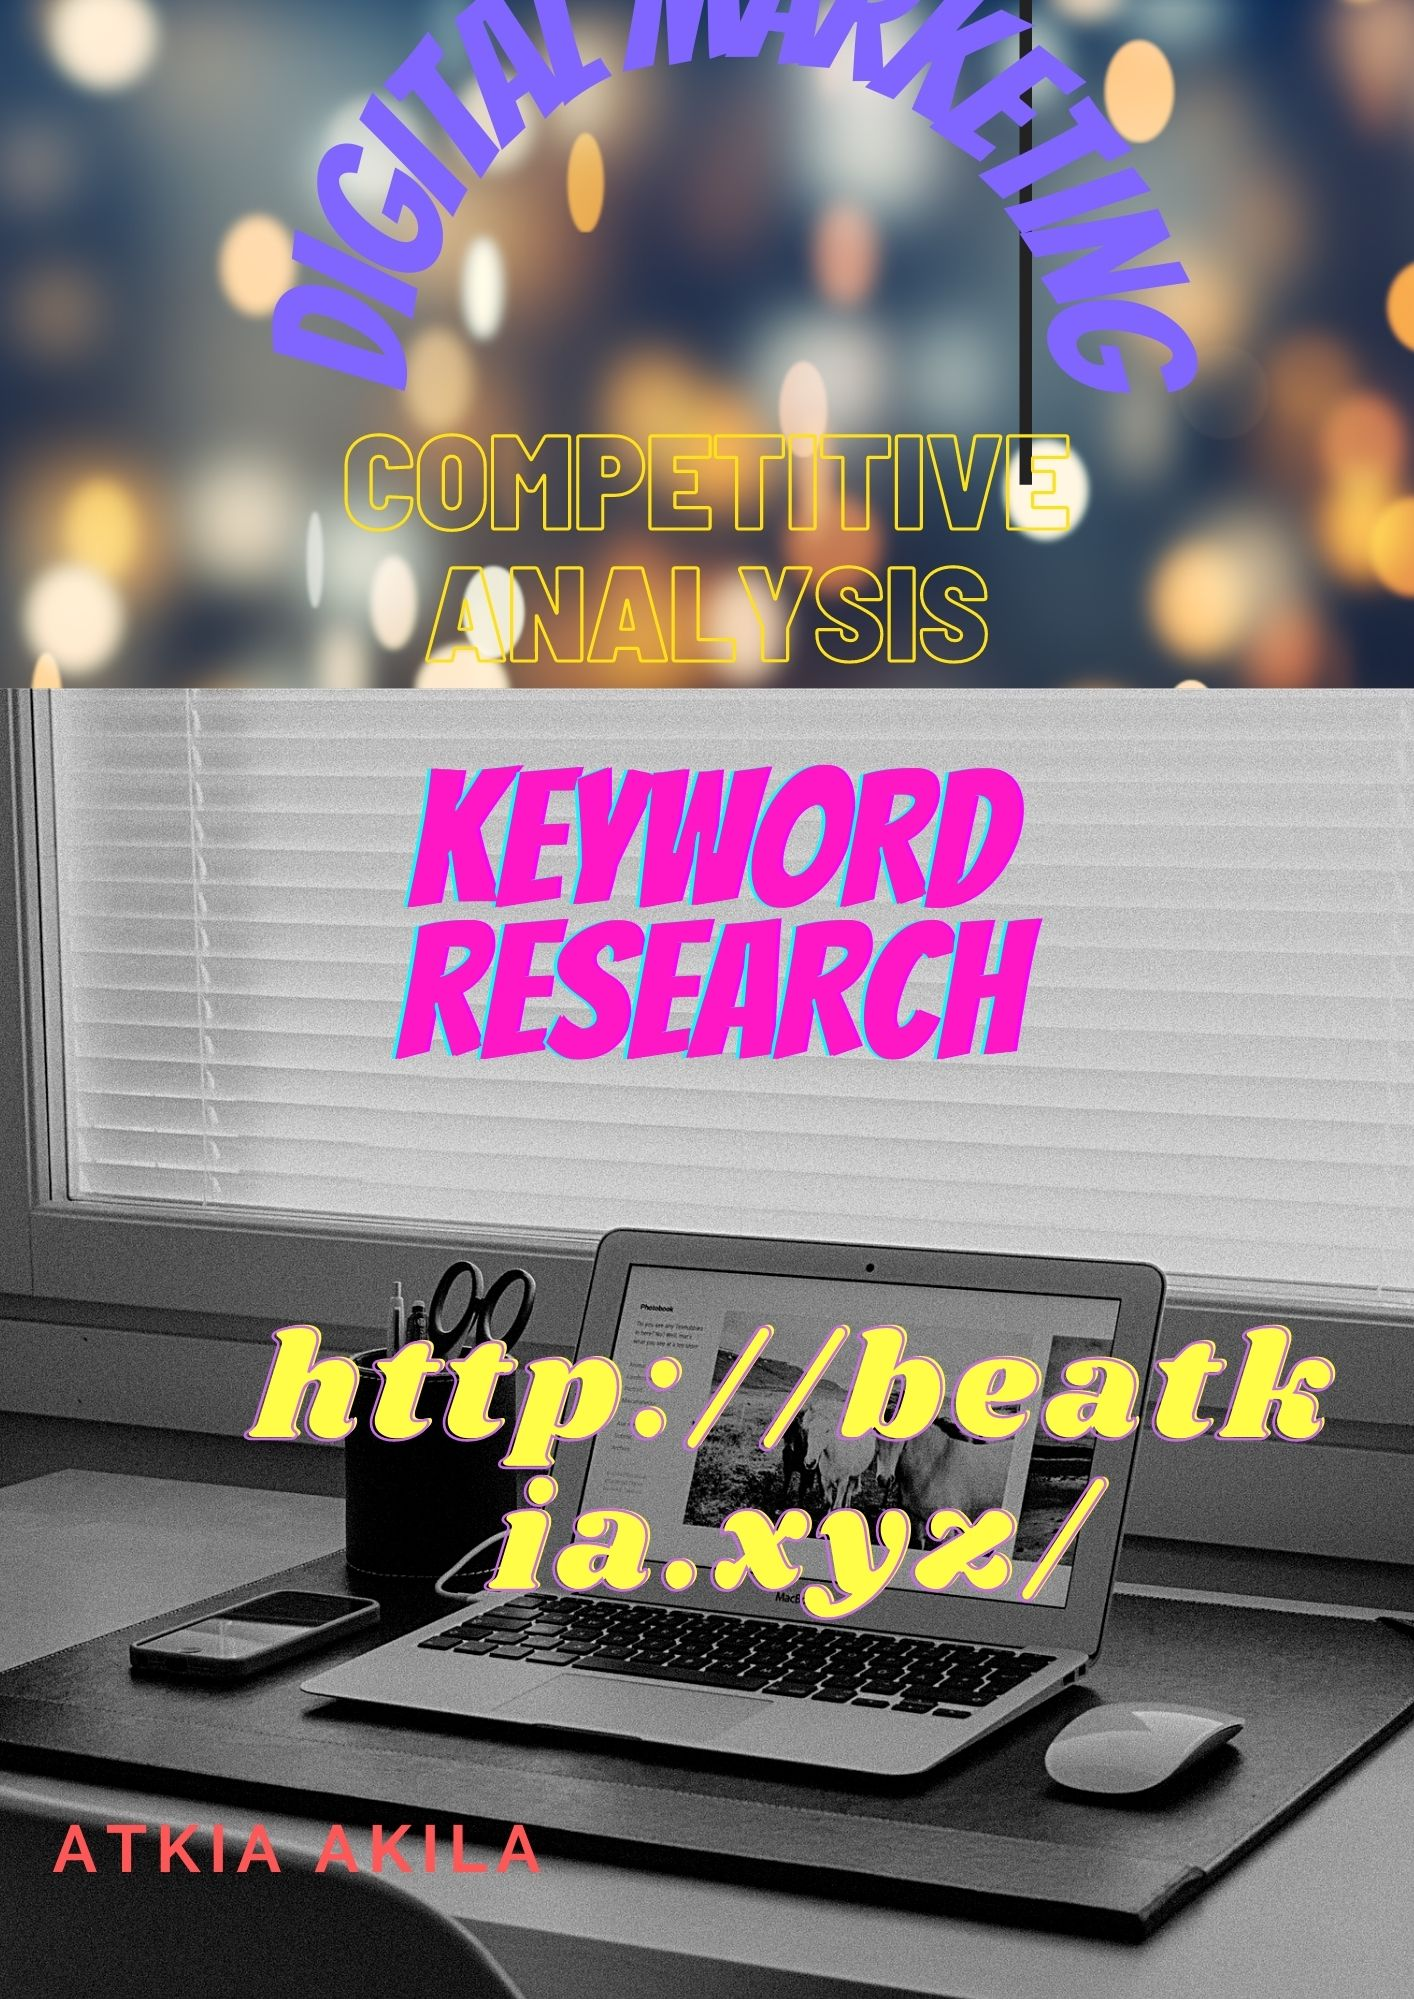 I will provide quality keyword research and competitive analysis